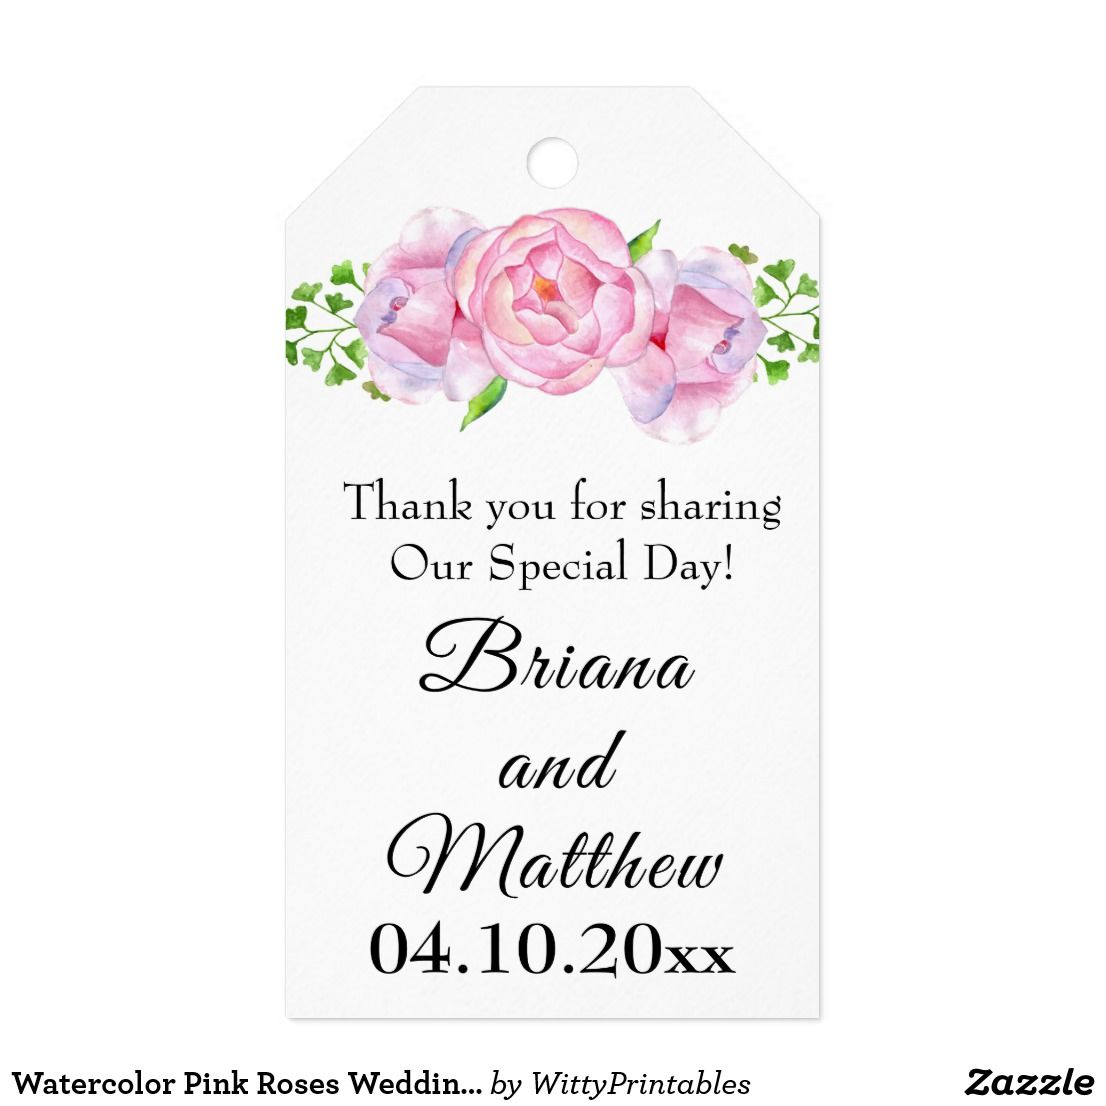 Watercolor Pink Roses Wedding Favors Gift Tag | Elegant Floral ...